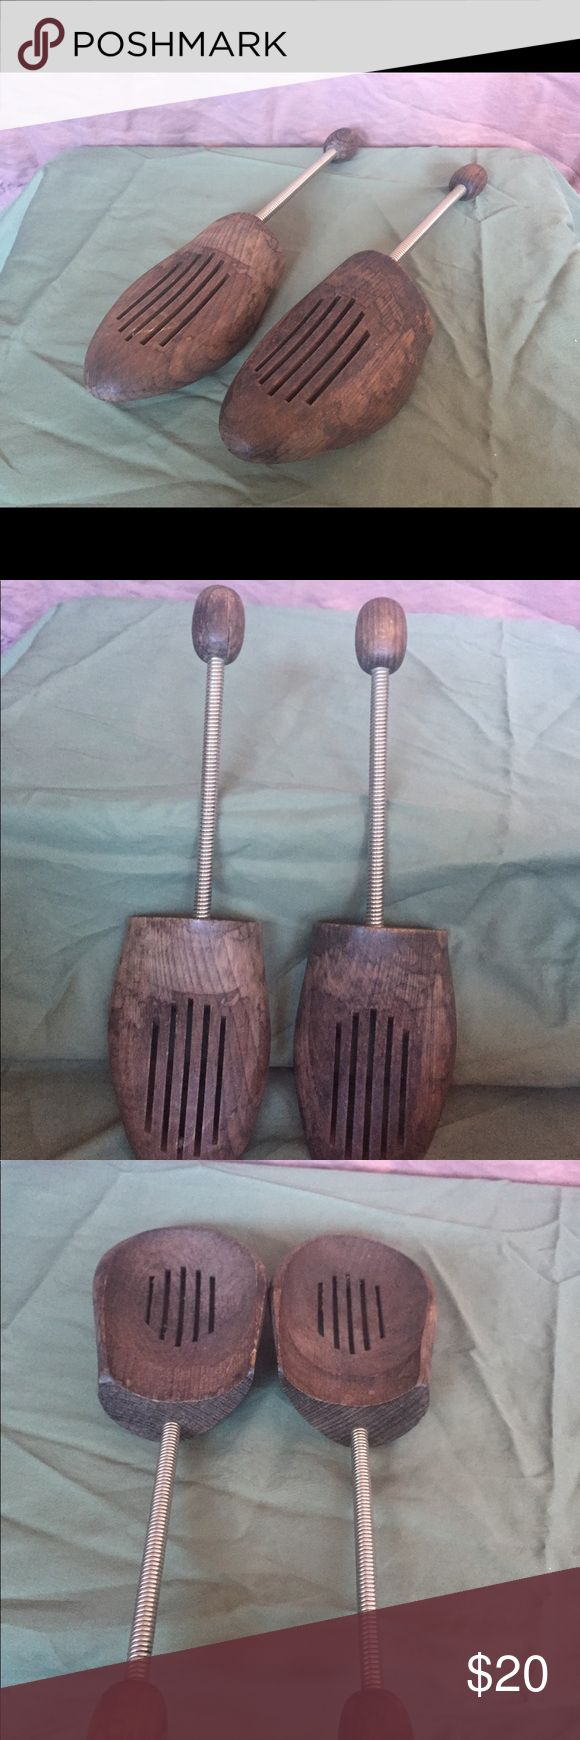 Antique wooden shoe stretchers size 13 men's Excellent condition  Wood shoe stretcher. Best size fits men's 13, but spring is flexible and can also fit size 11 & 12 Shoes